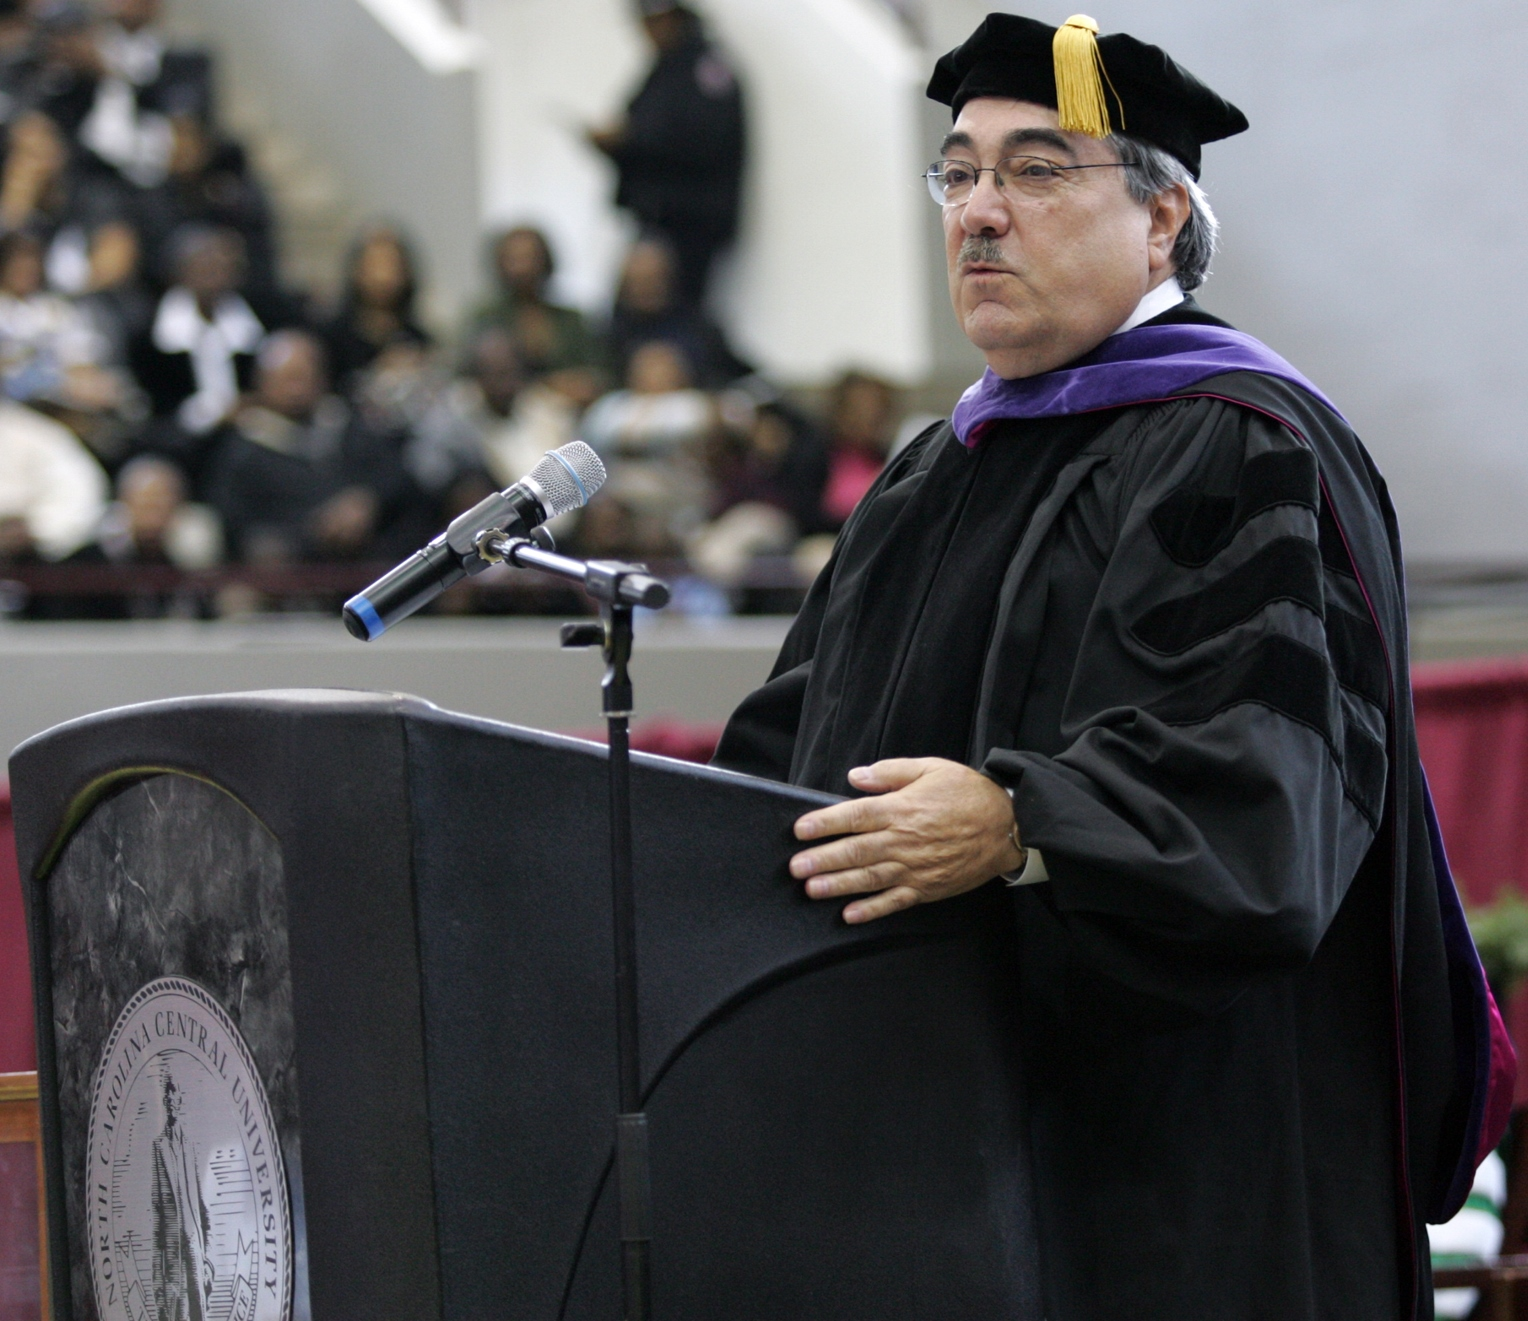 Congressman Butterfield speaking at the North Carolina Central University Commencement